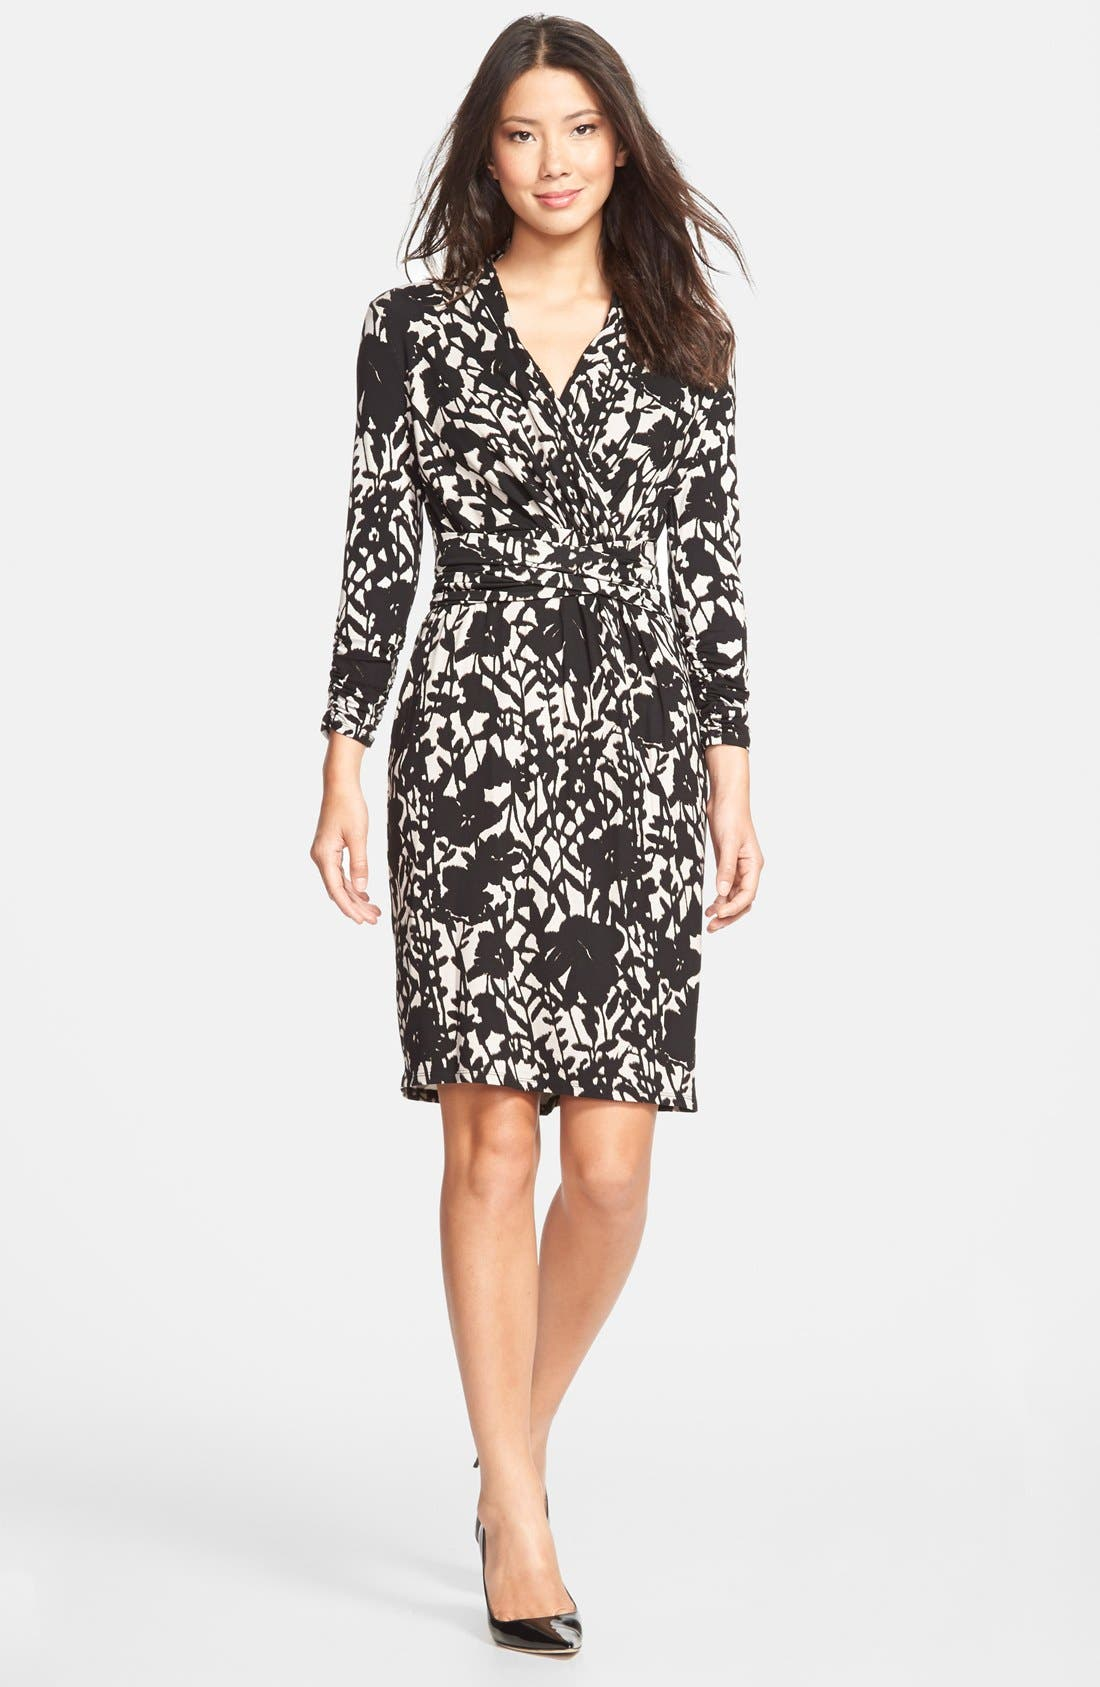 ADRIANNA PAPELL,                             Floral Print Faux Wrap Dress,                             Main thumbnail 1, color,                             015